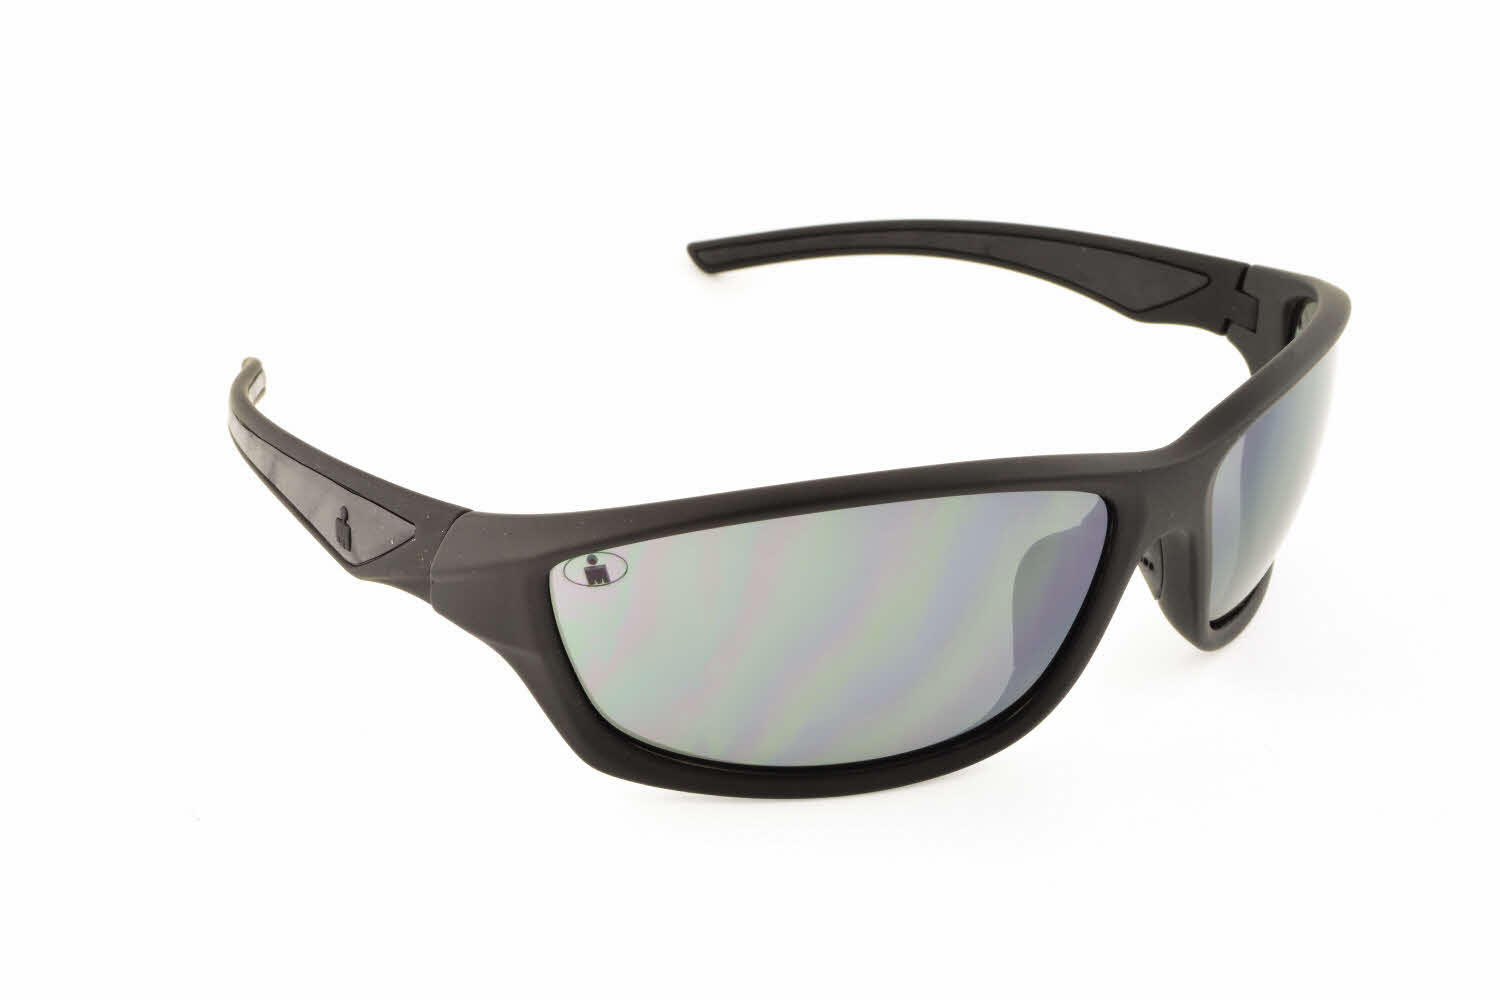 2a61b4c1e1 IronMan Relentless Sunglasses